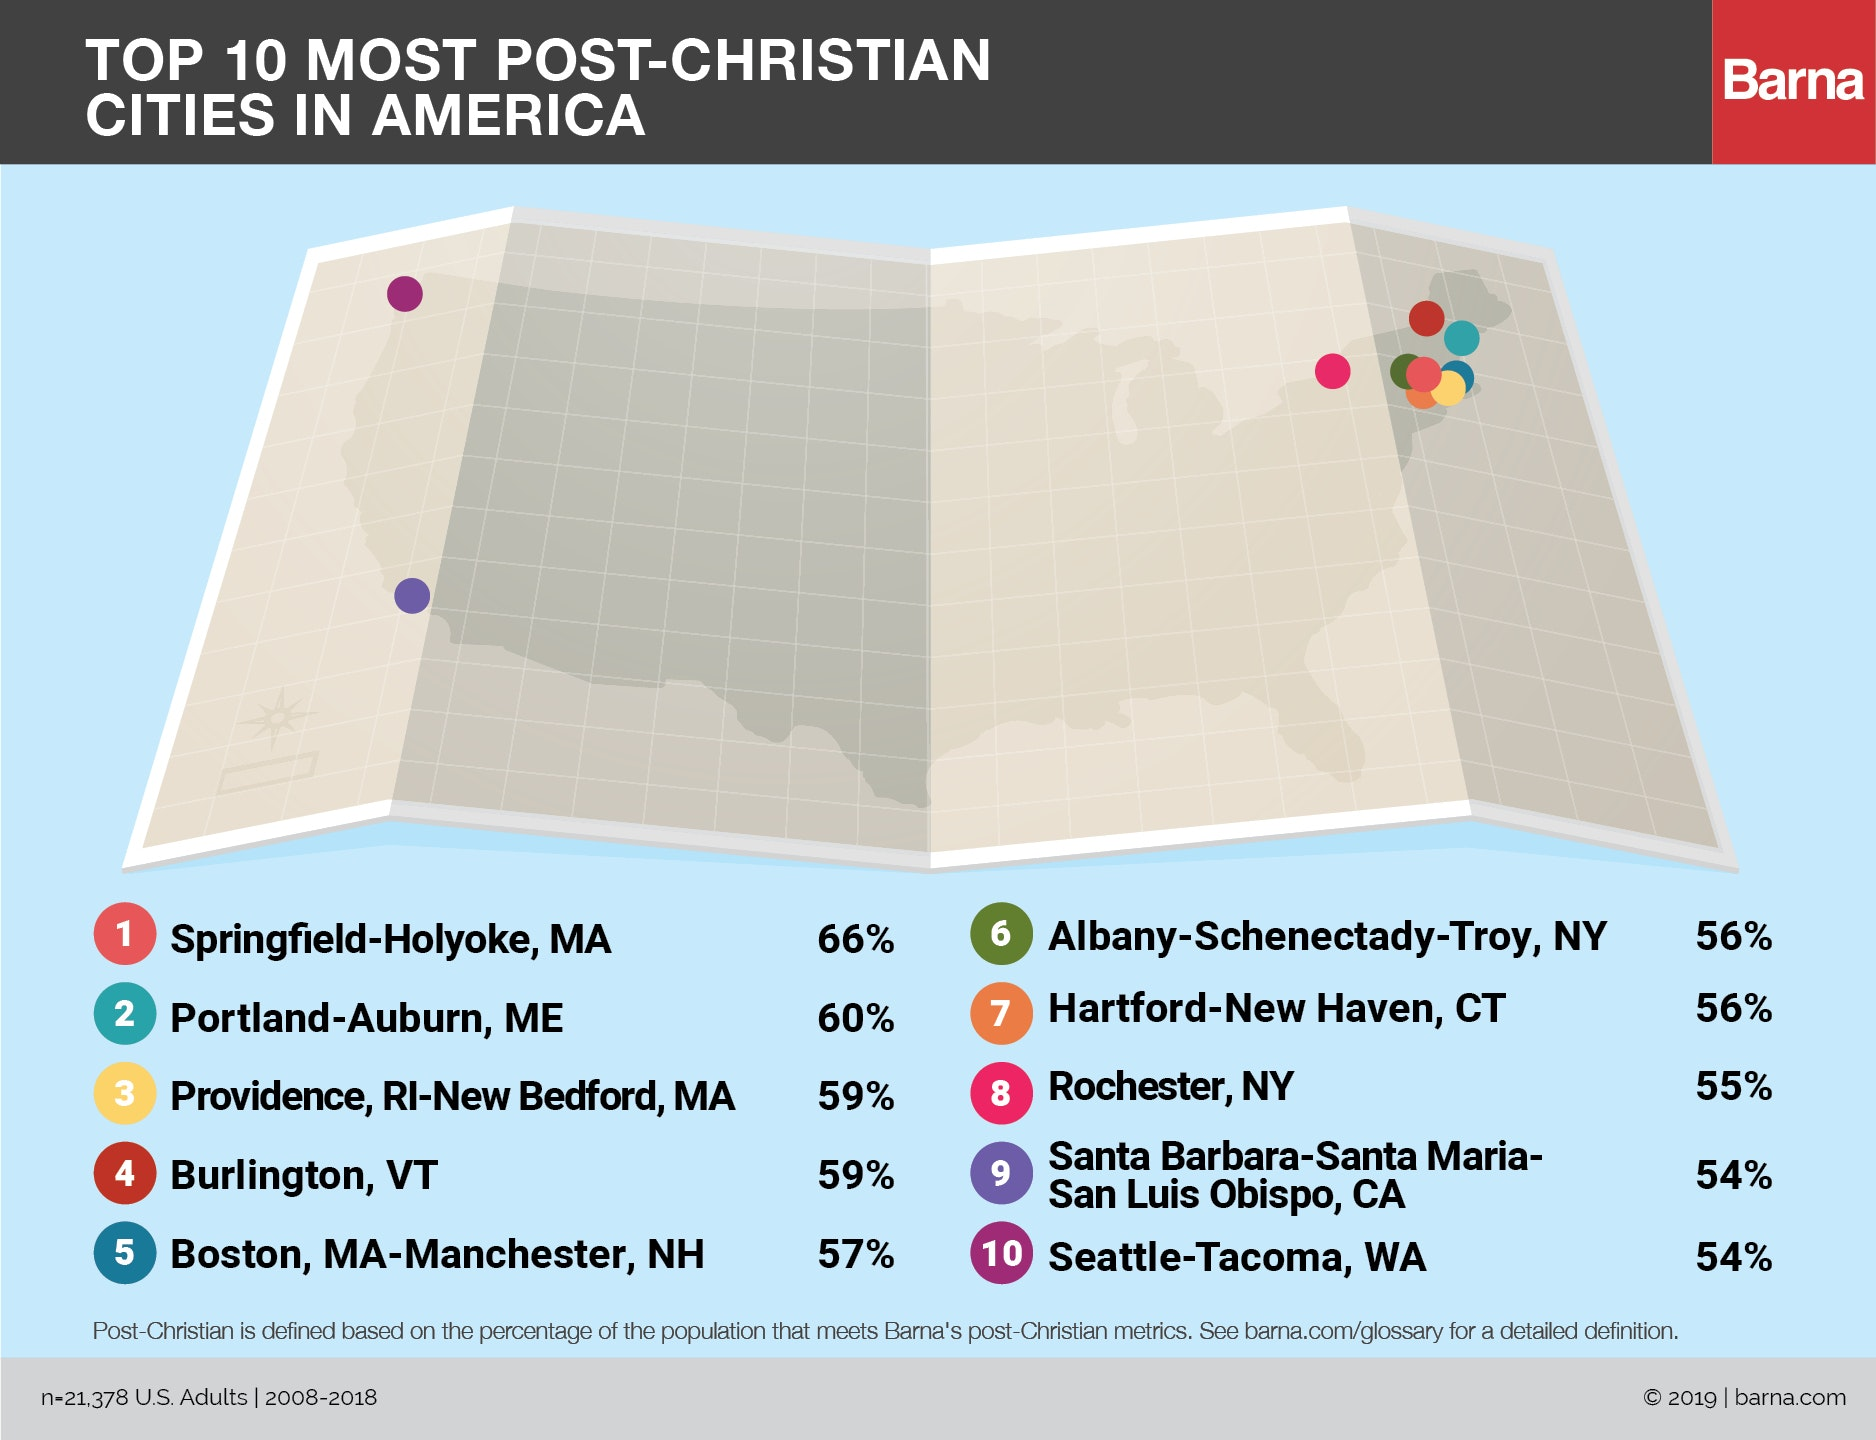 Map of the 10 Most Post-Christian USA Cities according to Barna Research